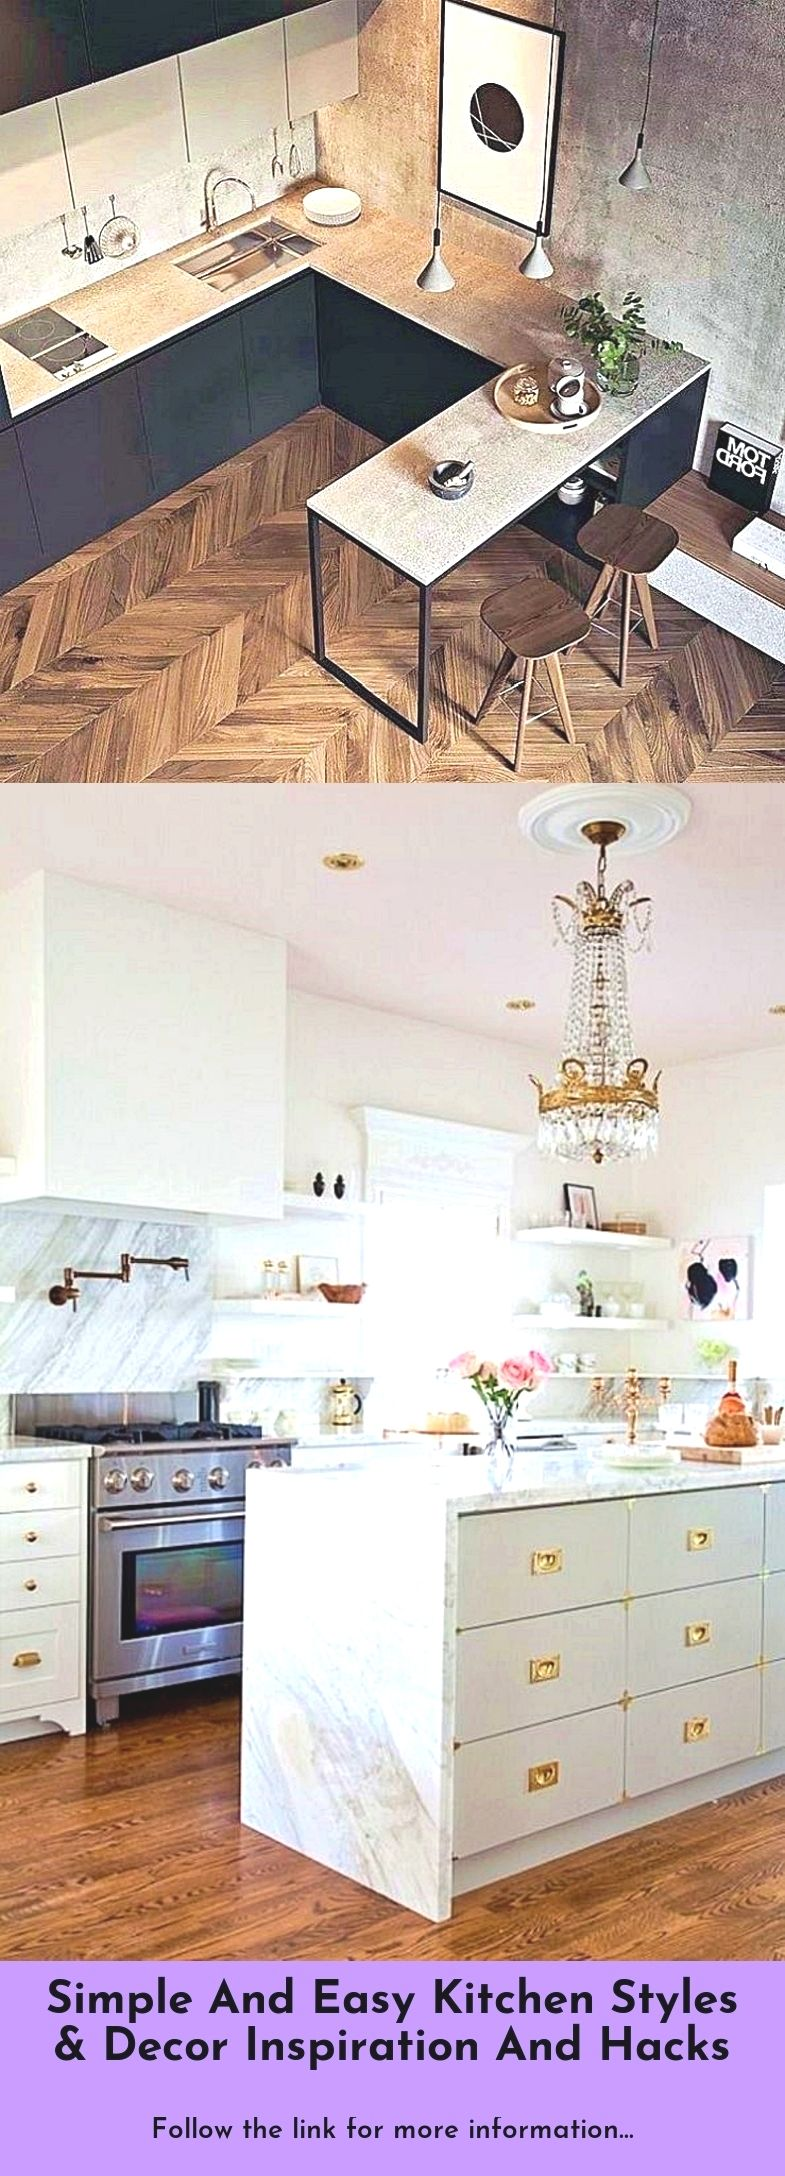 Best Pin By Jane Room Designs On Nice Kitchen Decor In 2020 400 x 300